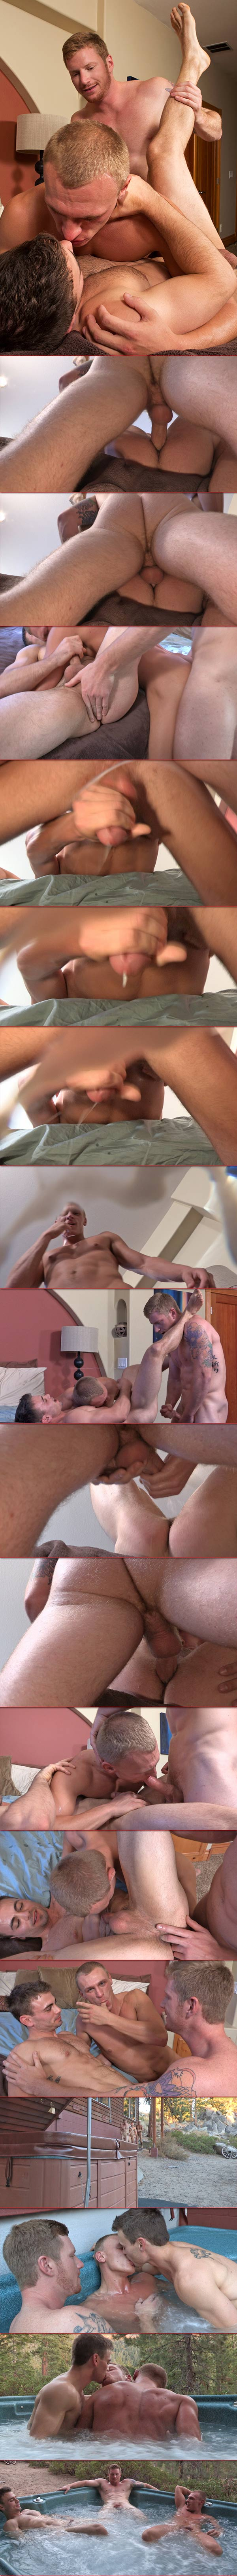 mountain-GA1-seancody-04